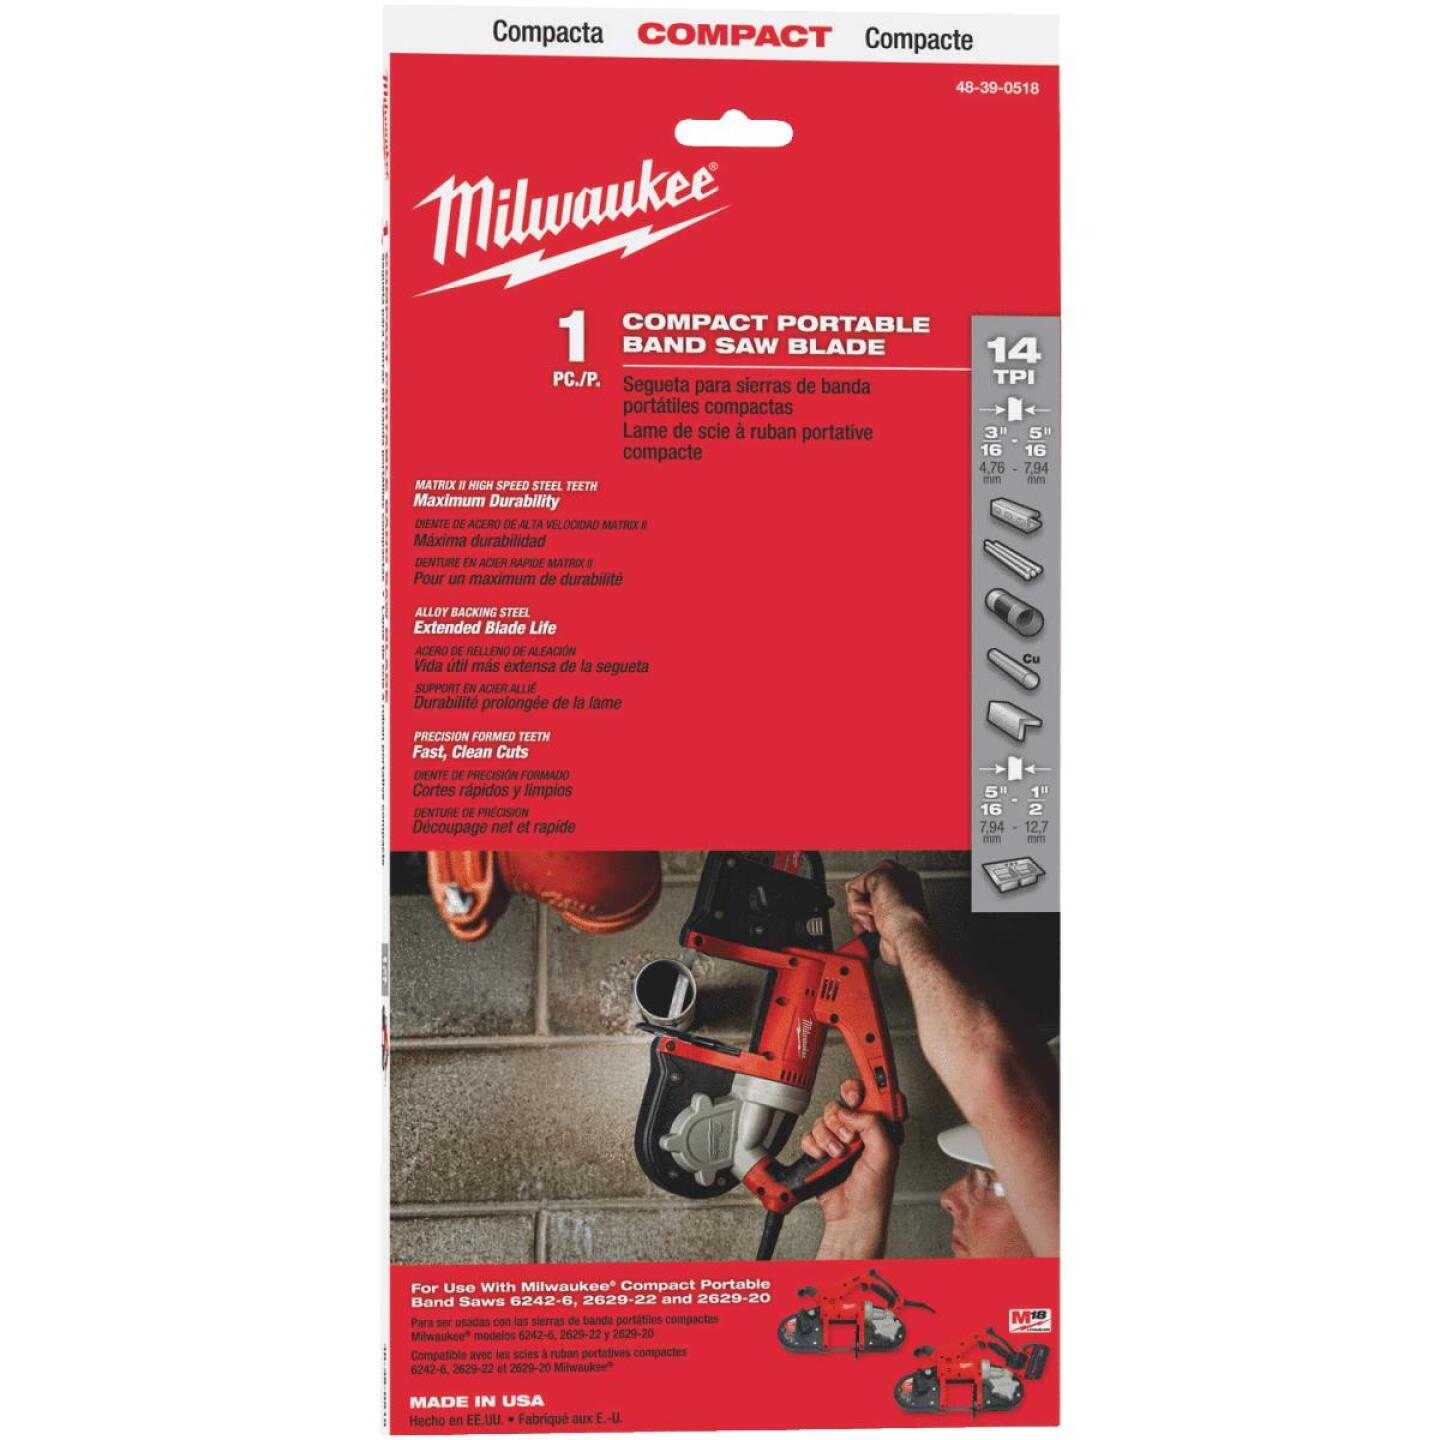 Milwaukee 35-3/8 In. x 1/2 In. 14 TPI Compact Band Saw Blade Image 1